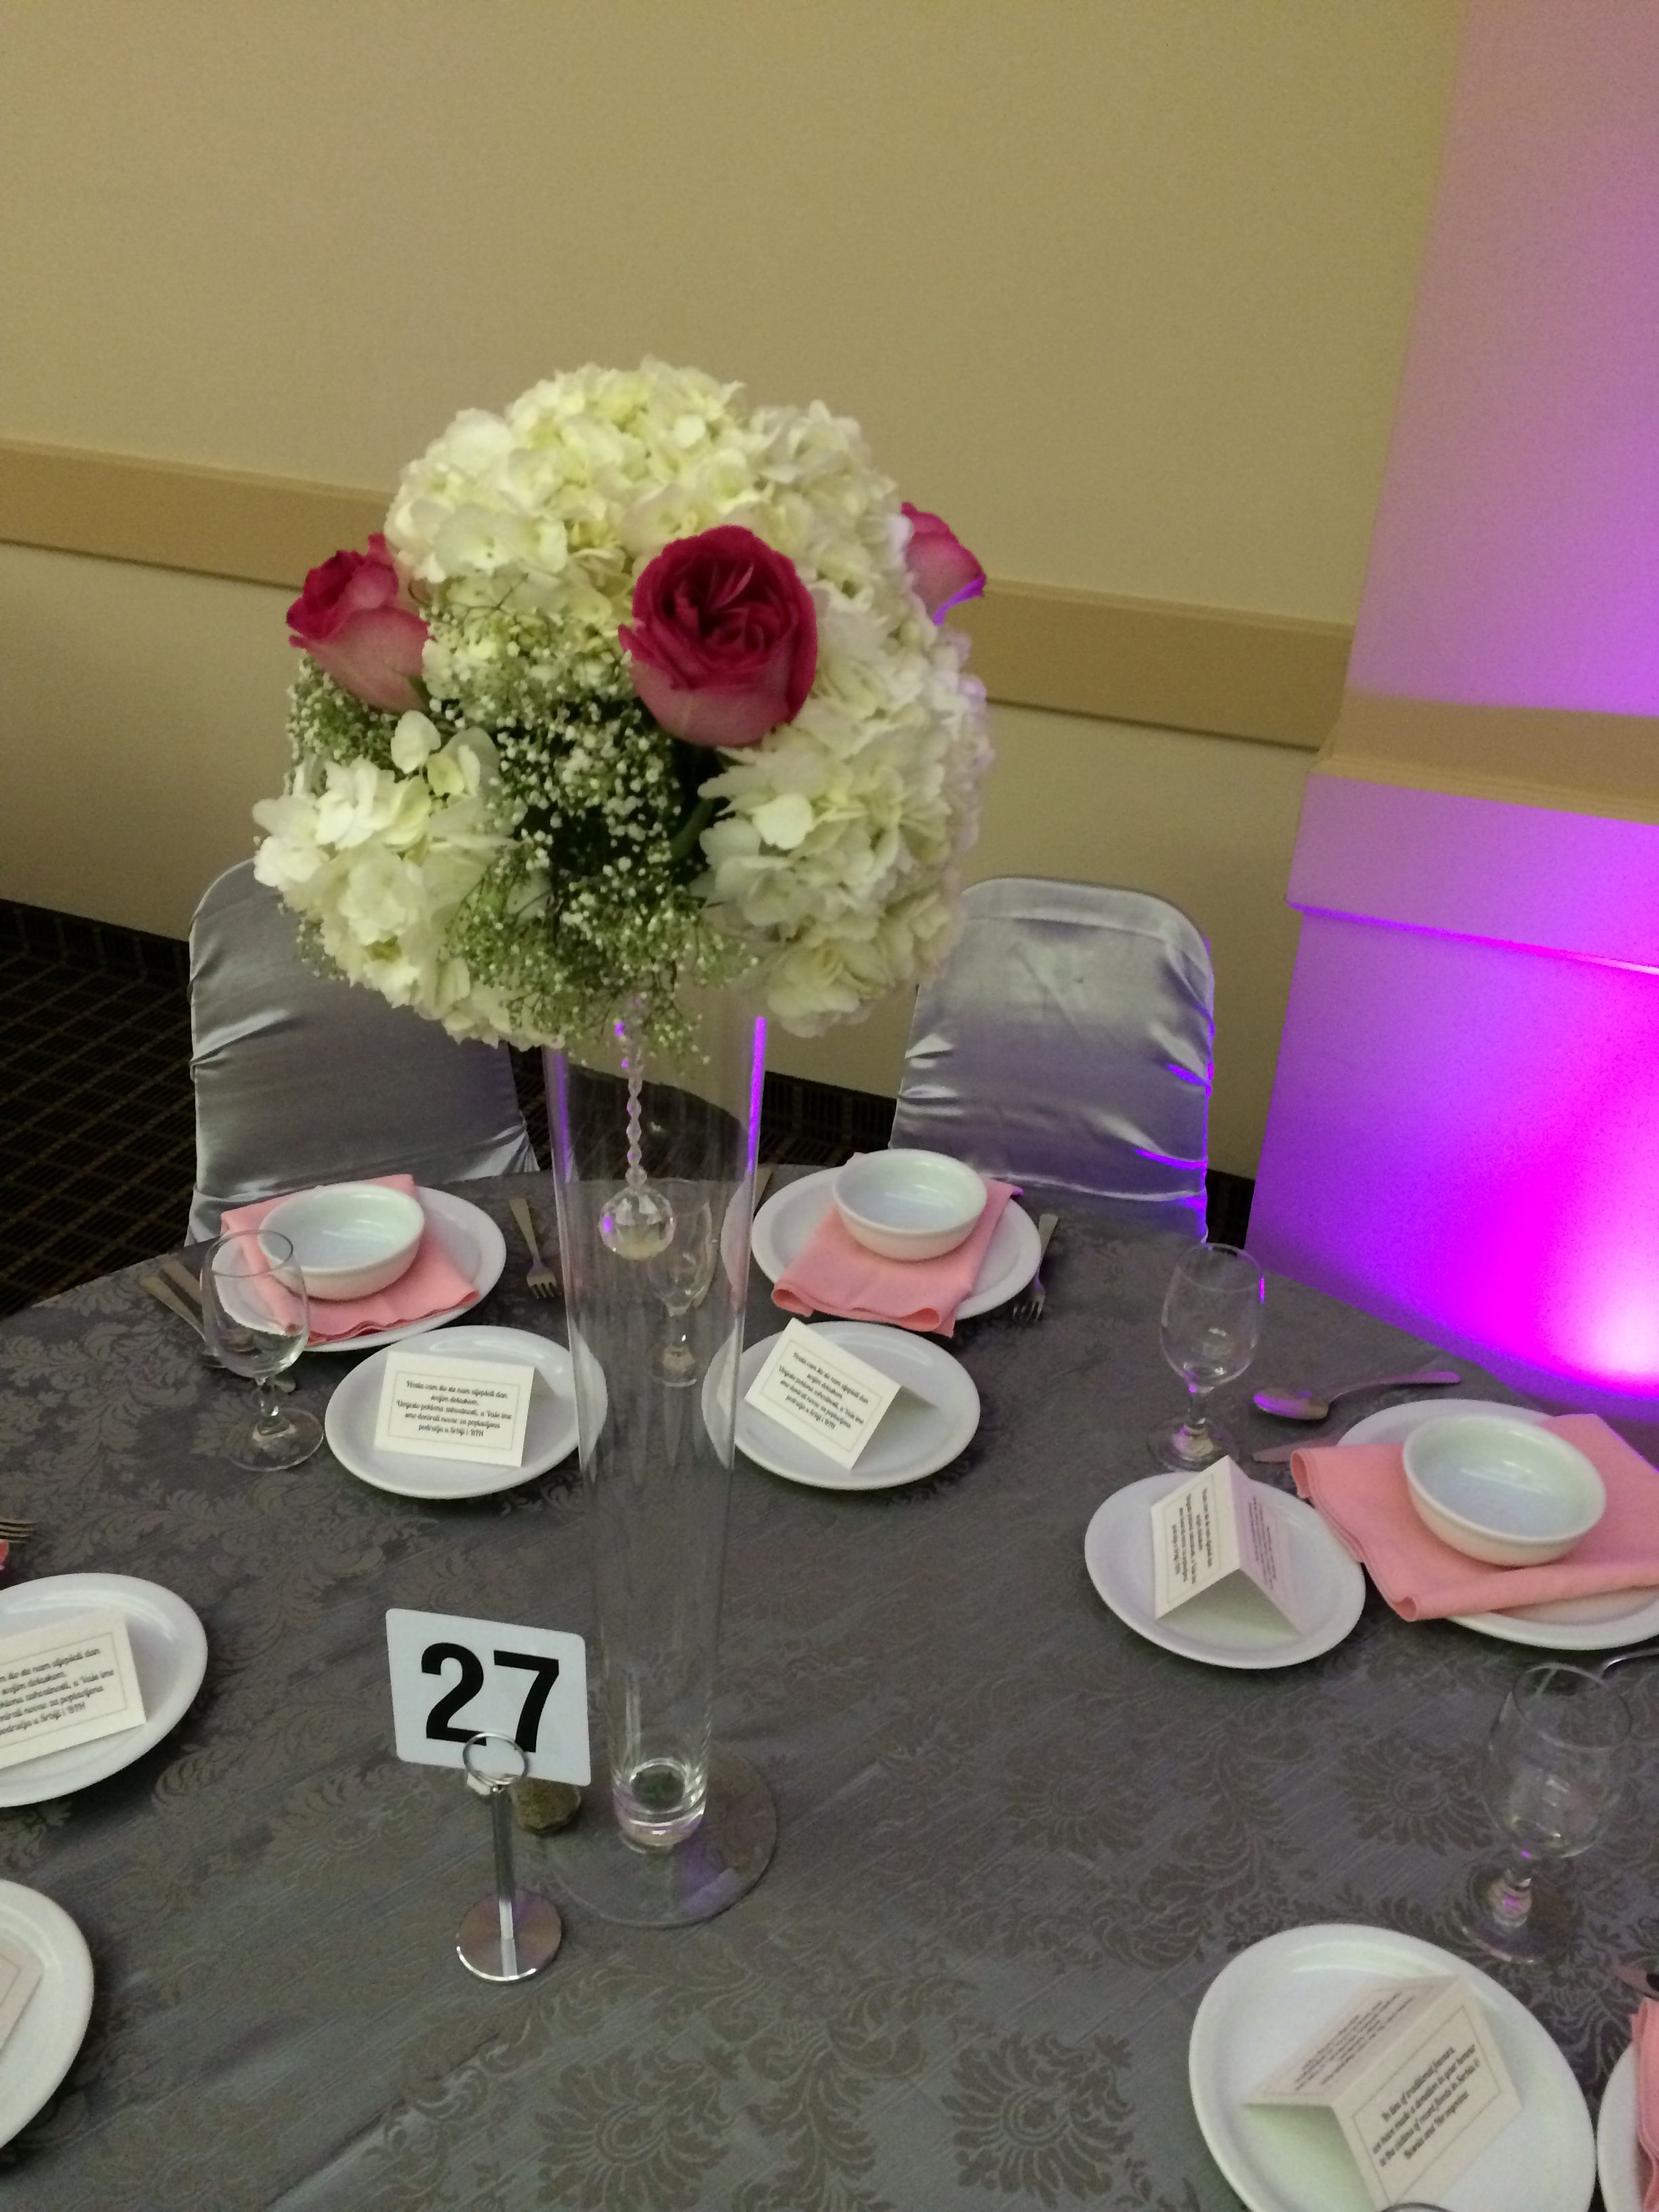 Pink rose and white hydrangea centerpiece by Royal Room weddings